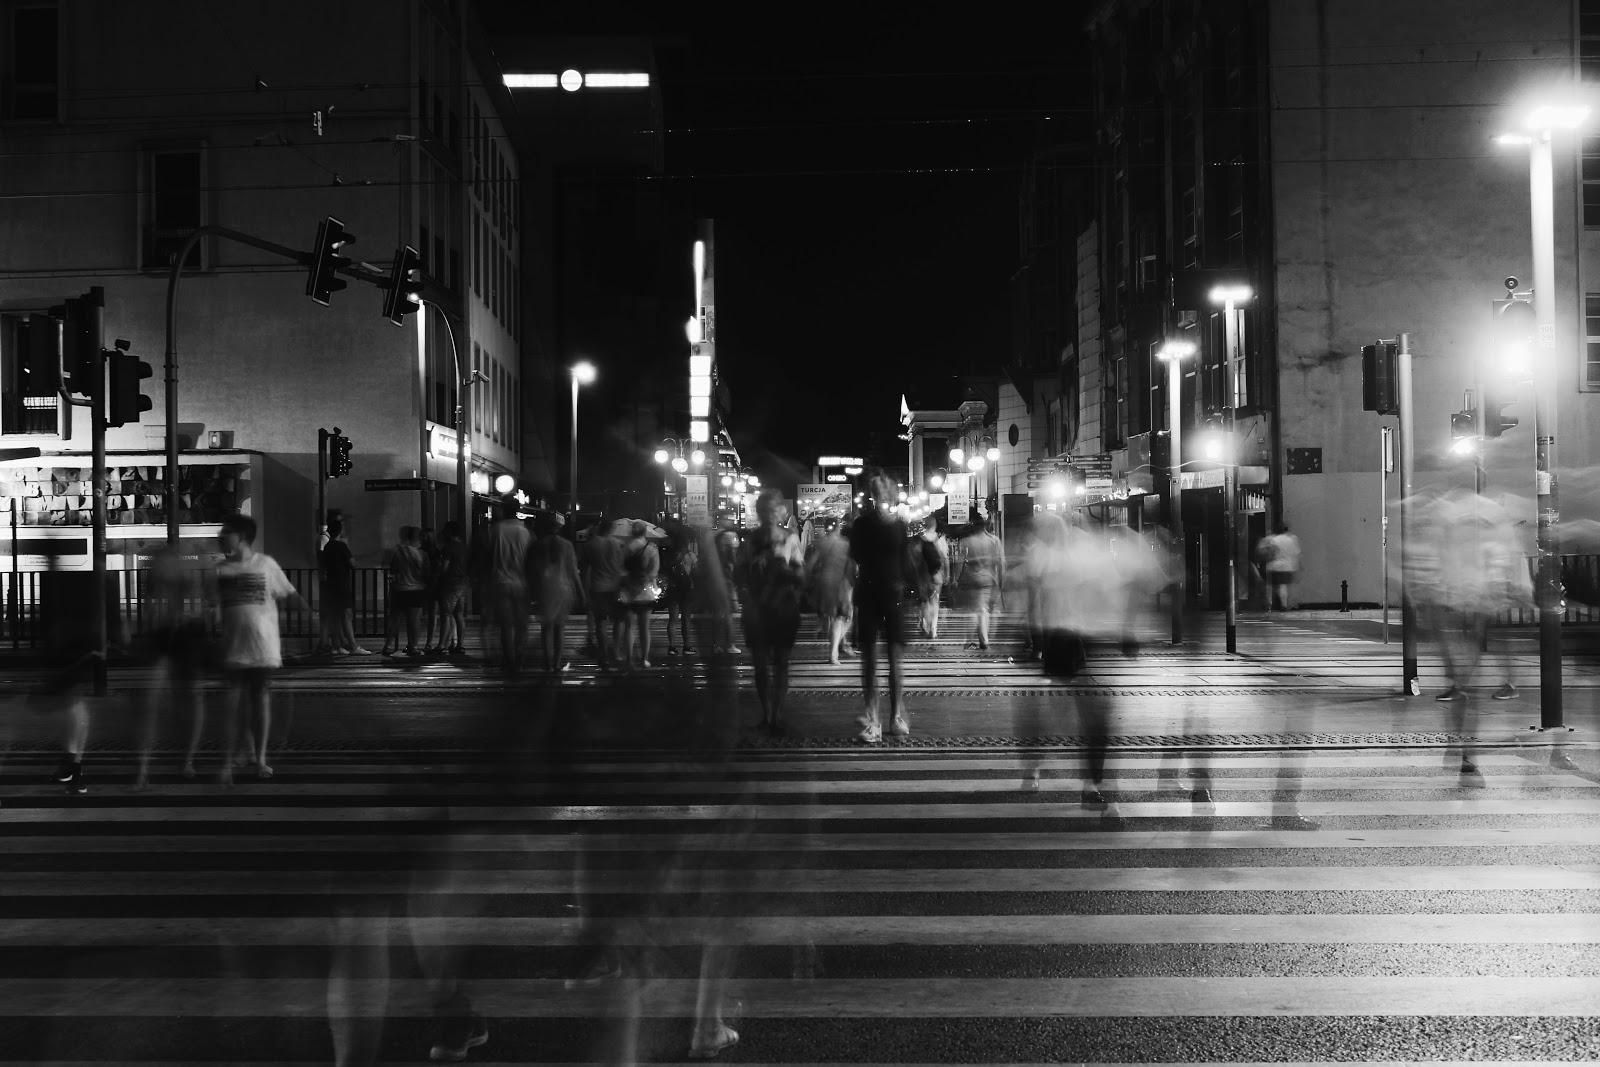 time lapse photography of people who are in the street